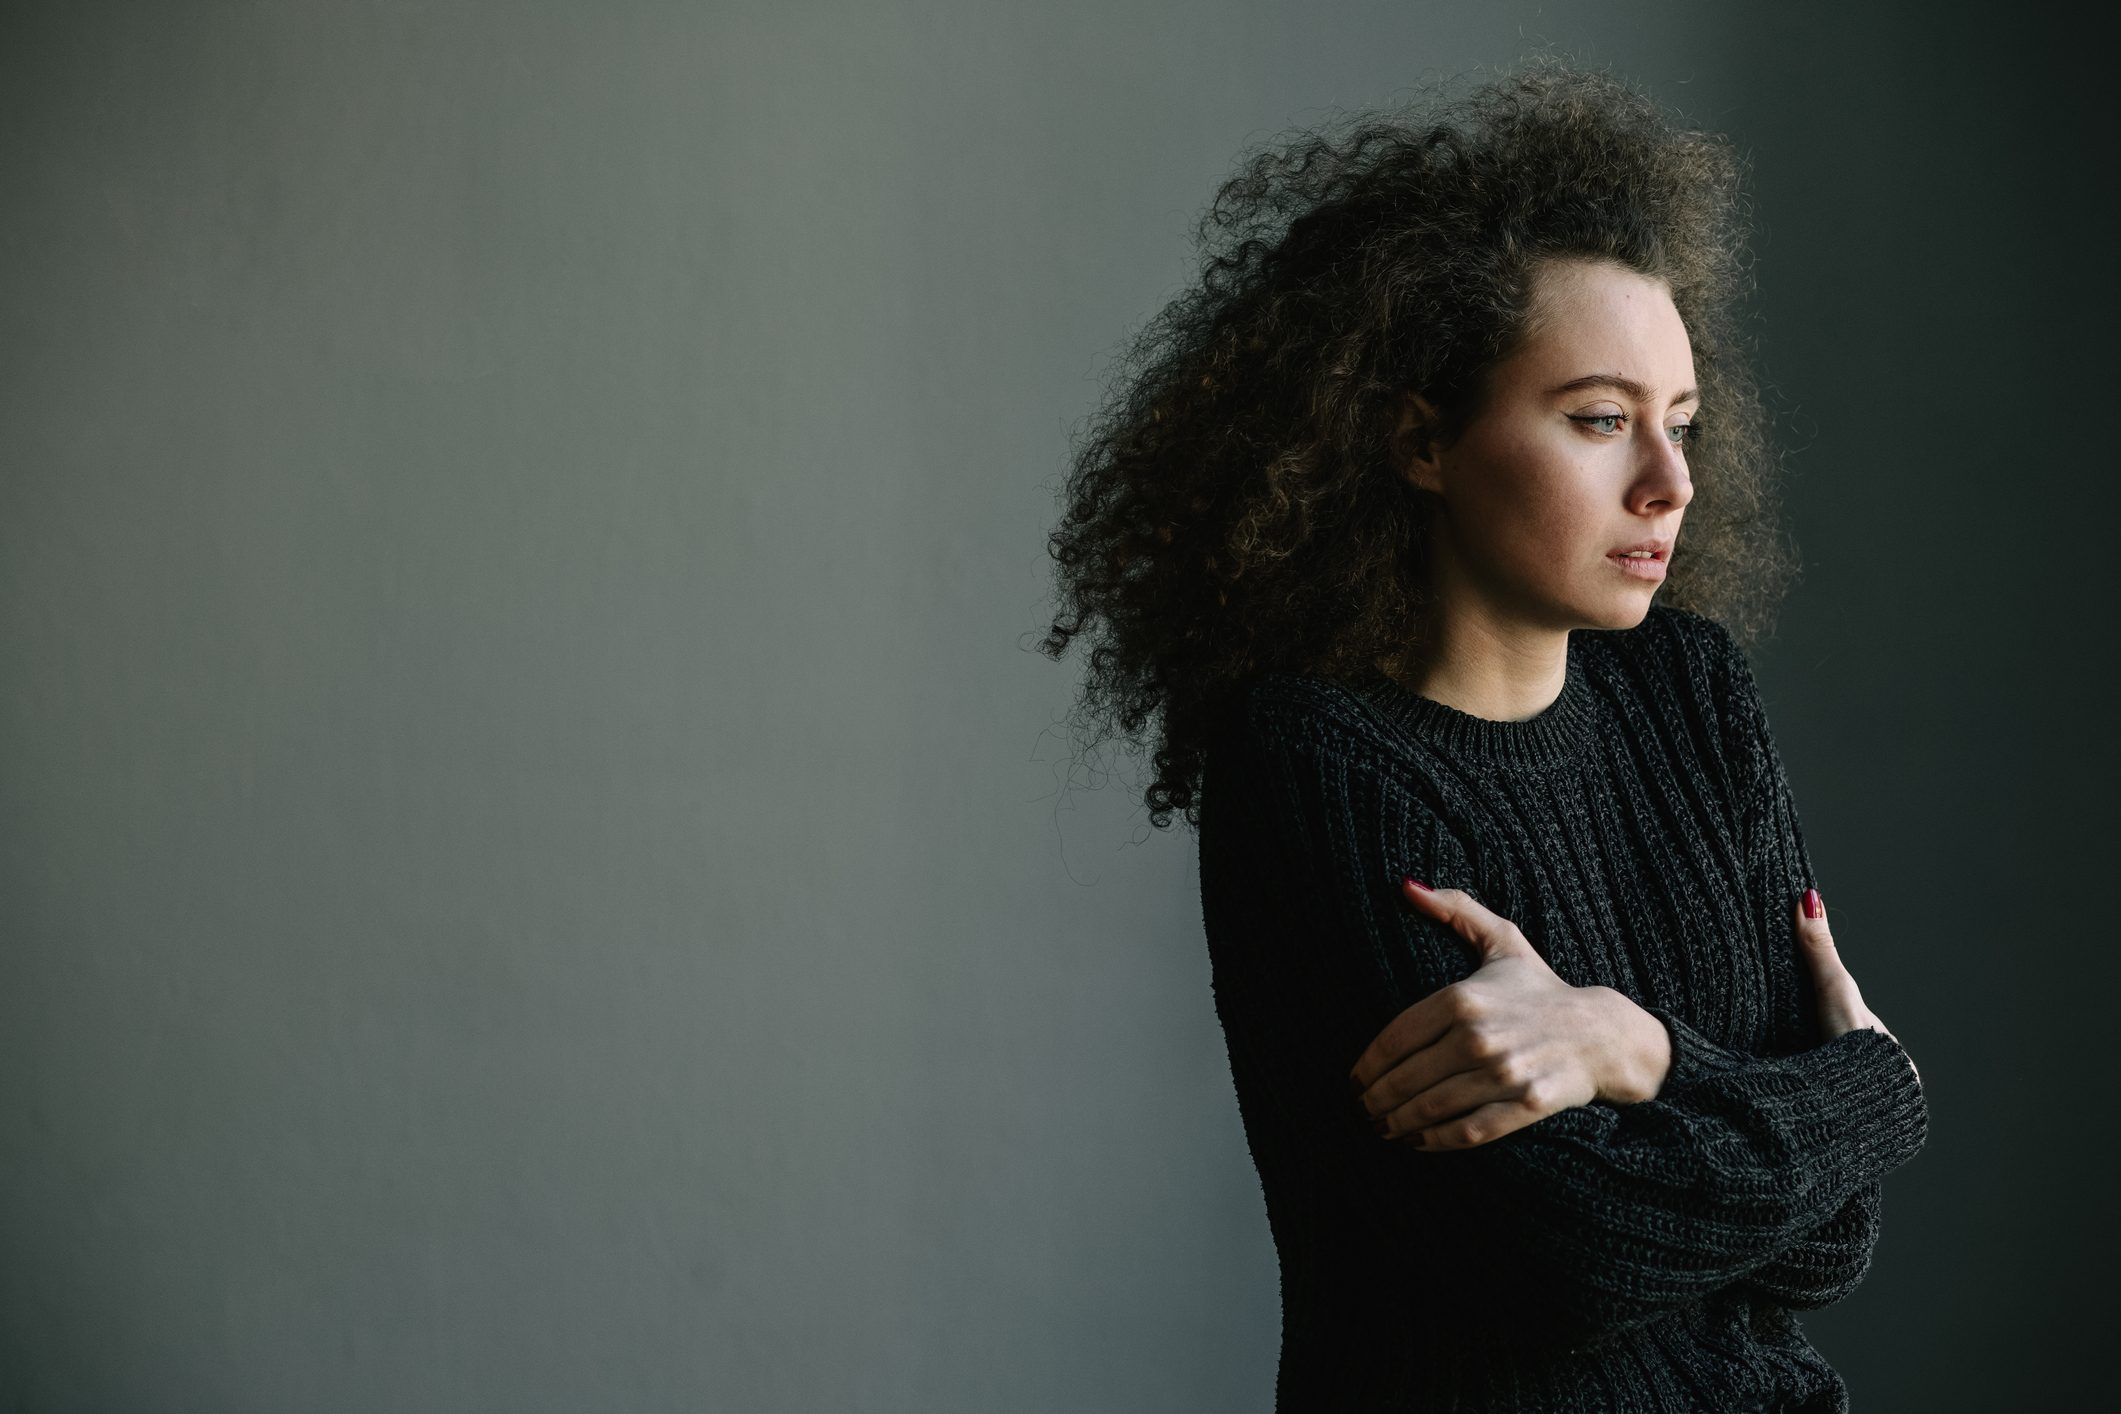 young woman struggling with depression